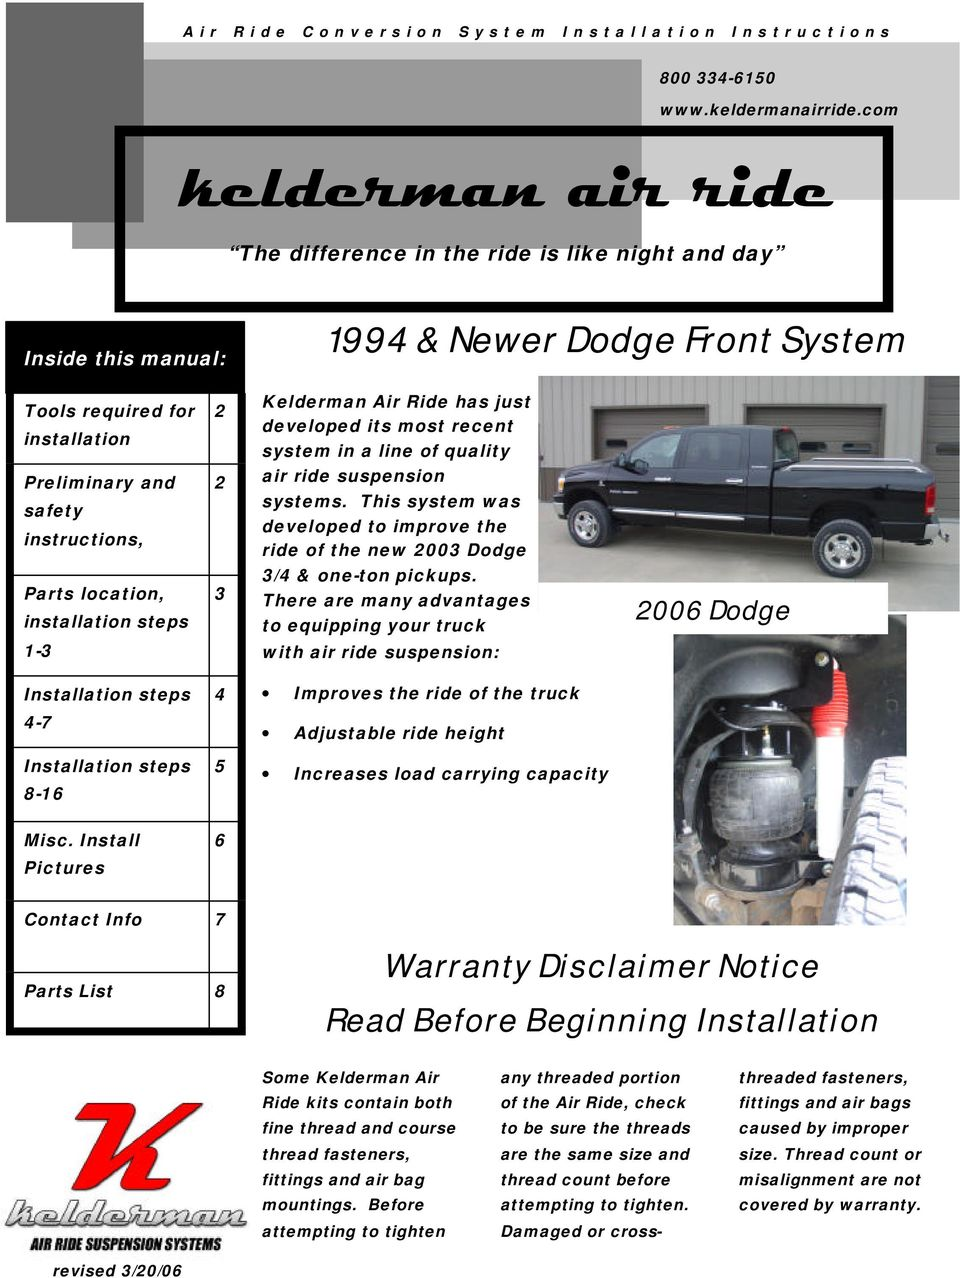 most recent system in a line of quality Preliminary and safety instructions, 2 air ride suspension systems.